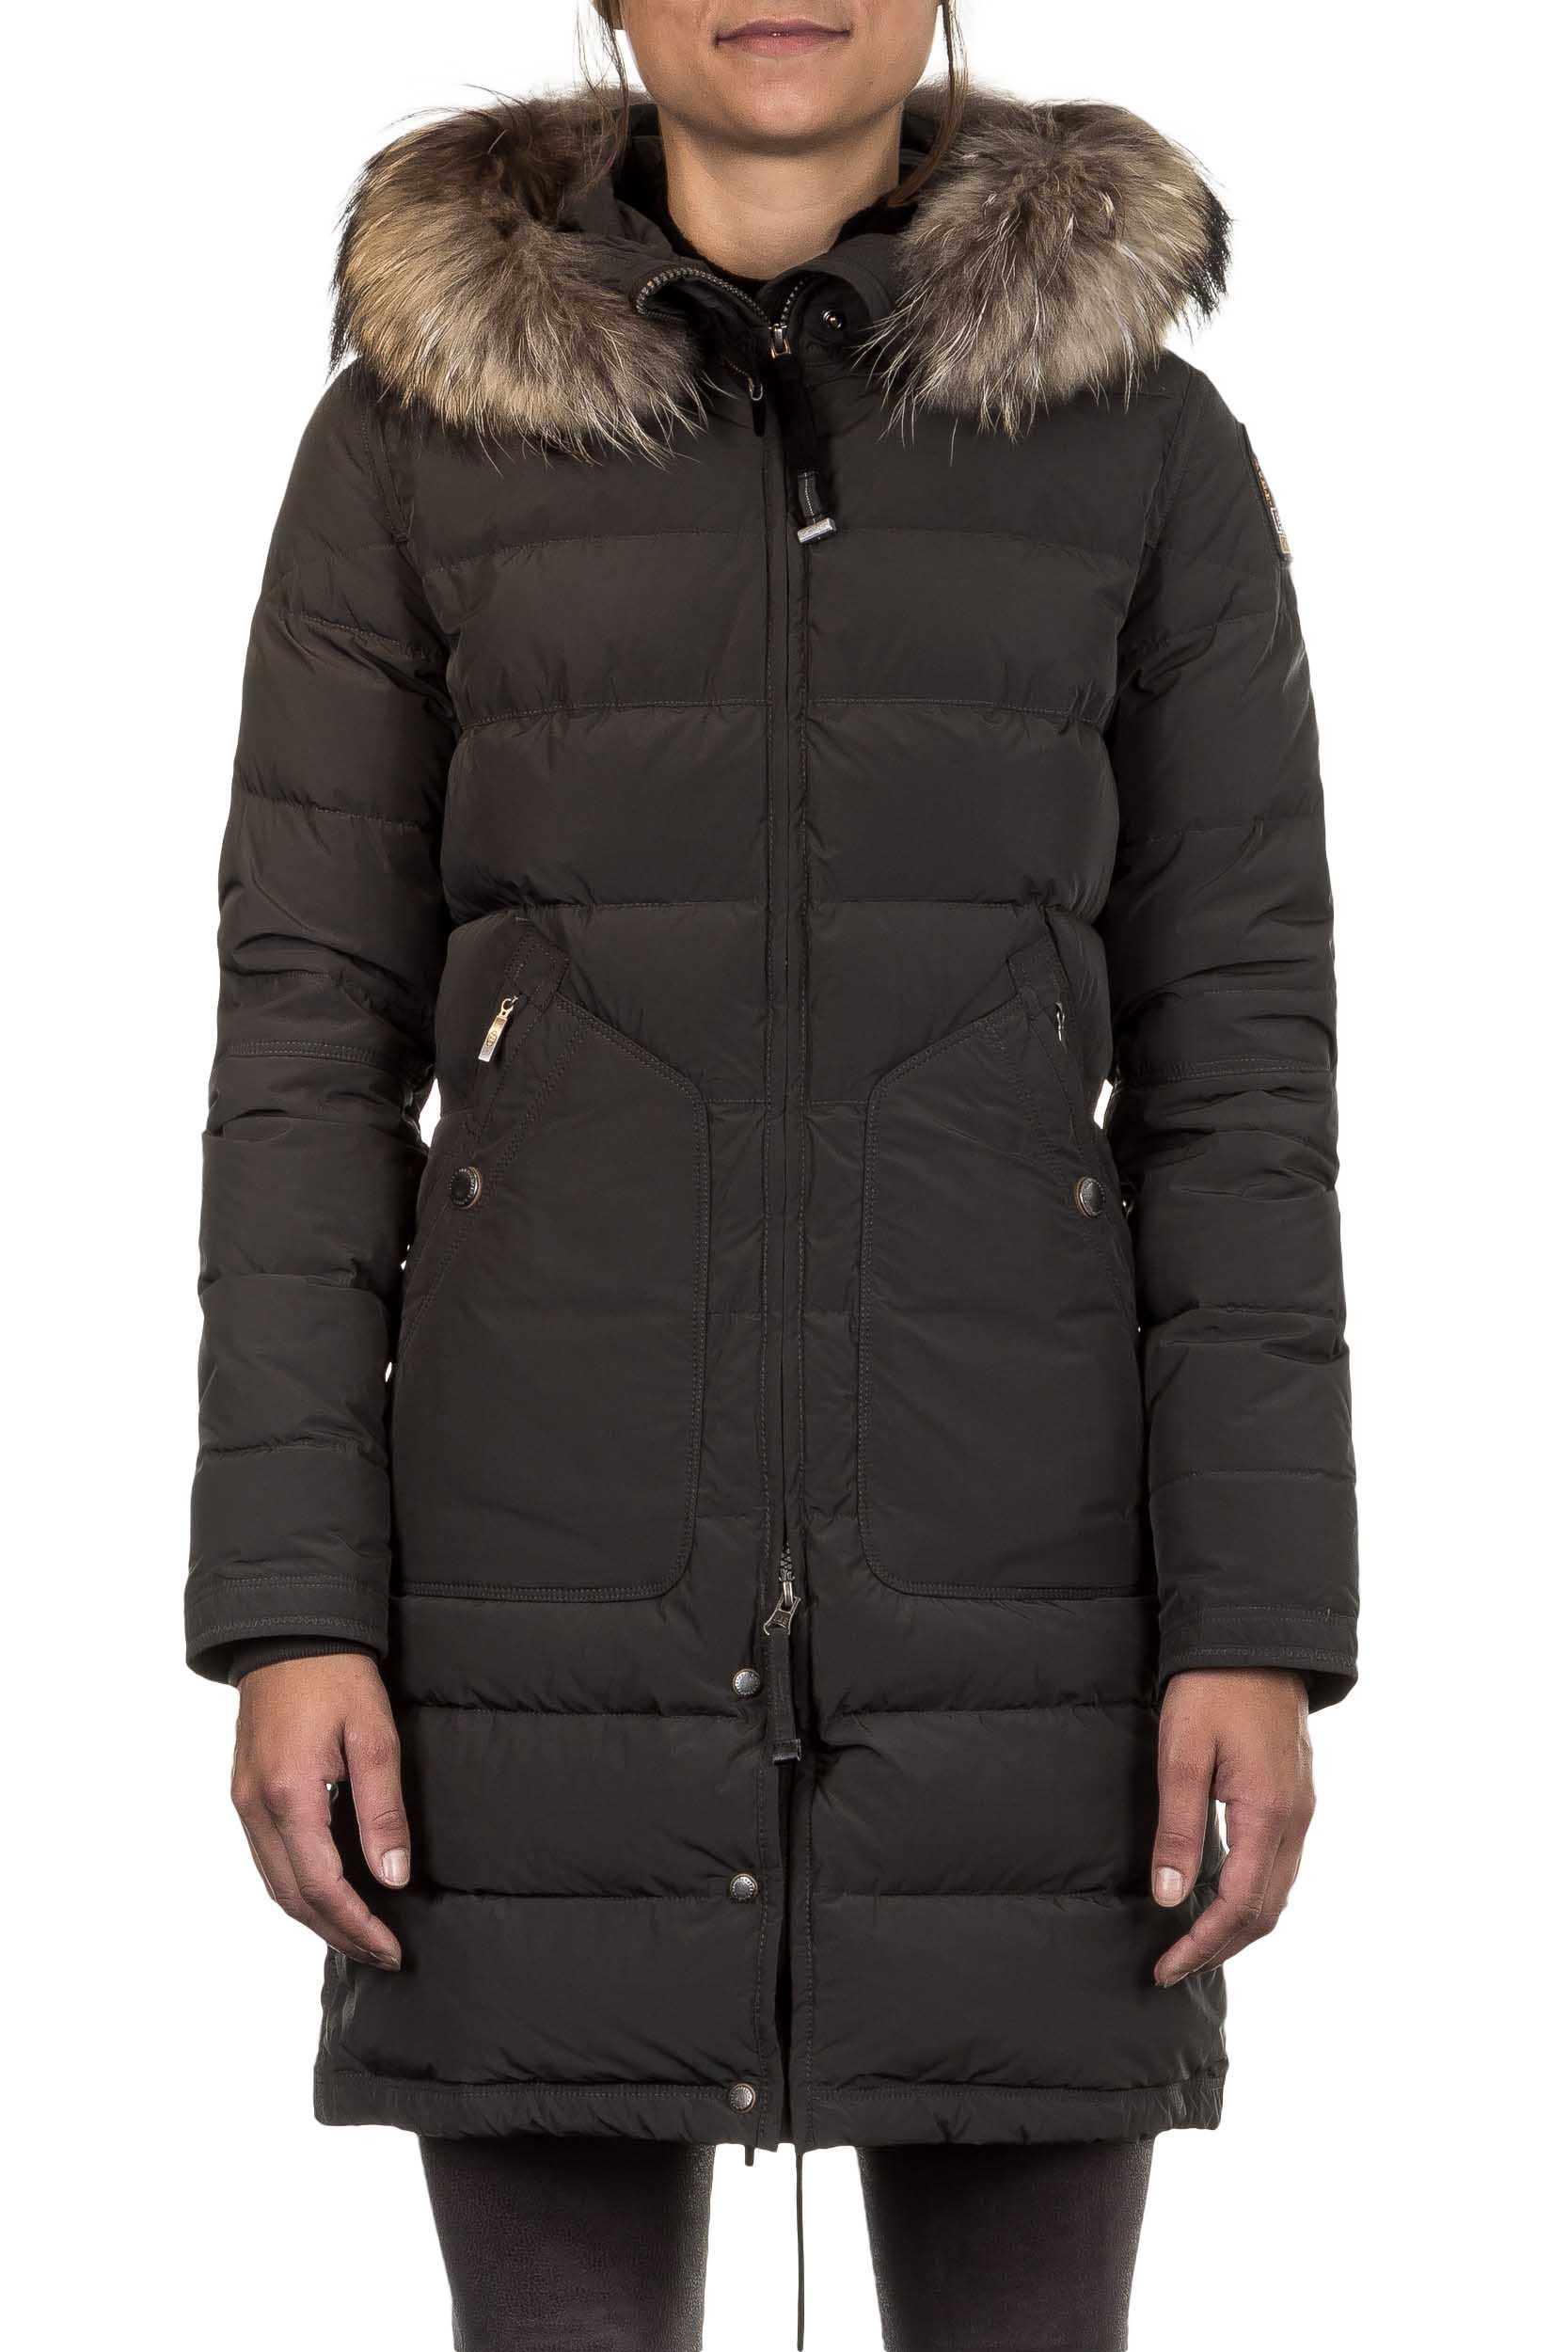 parajumpers daunenmantel light long bear mit fellkragen